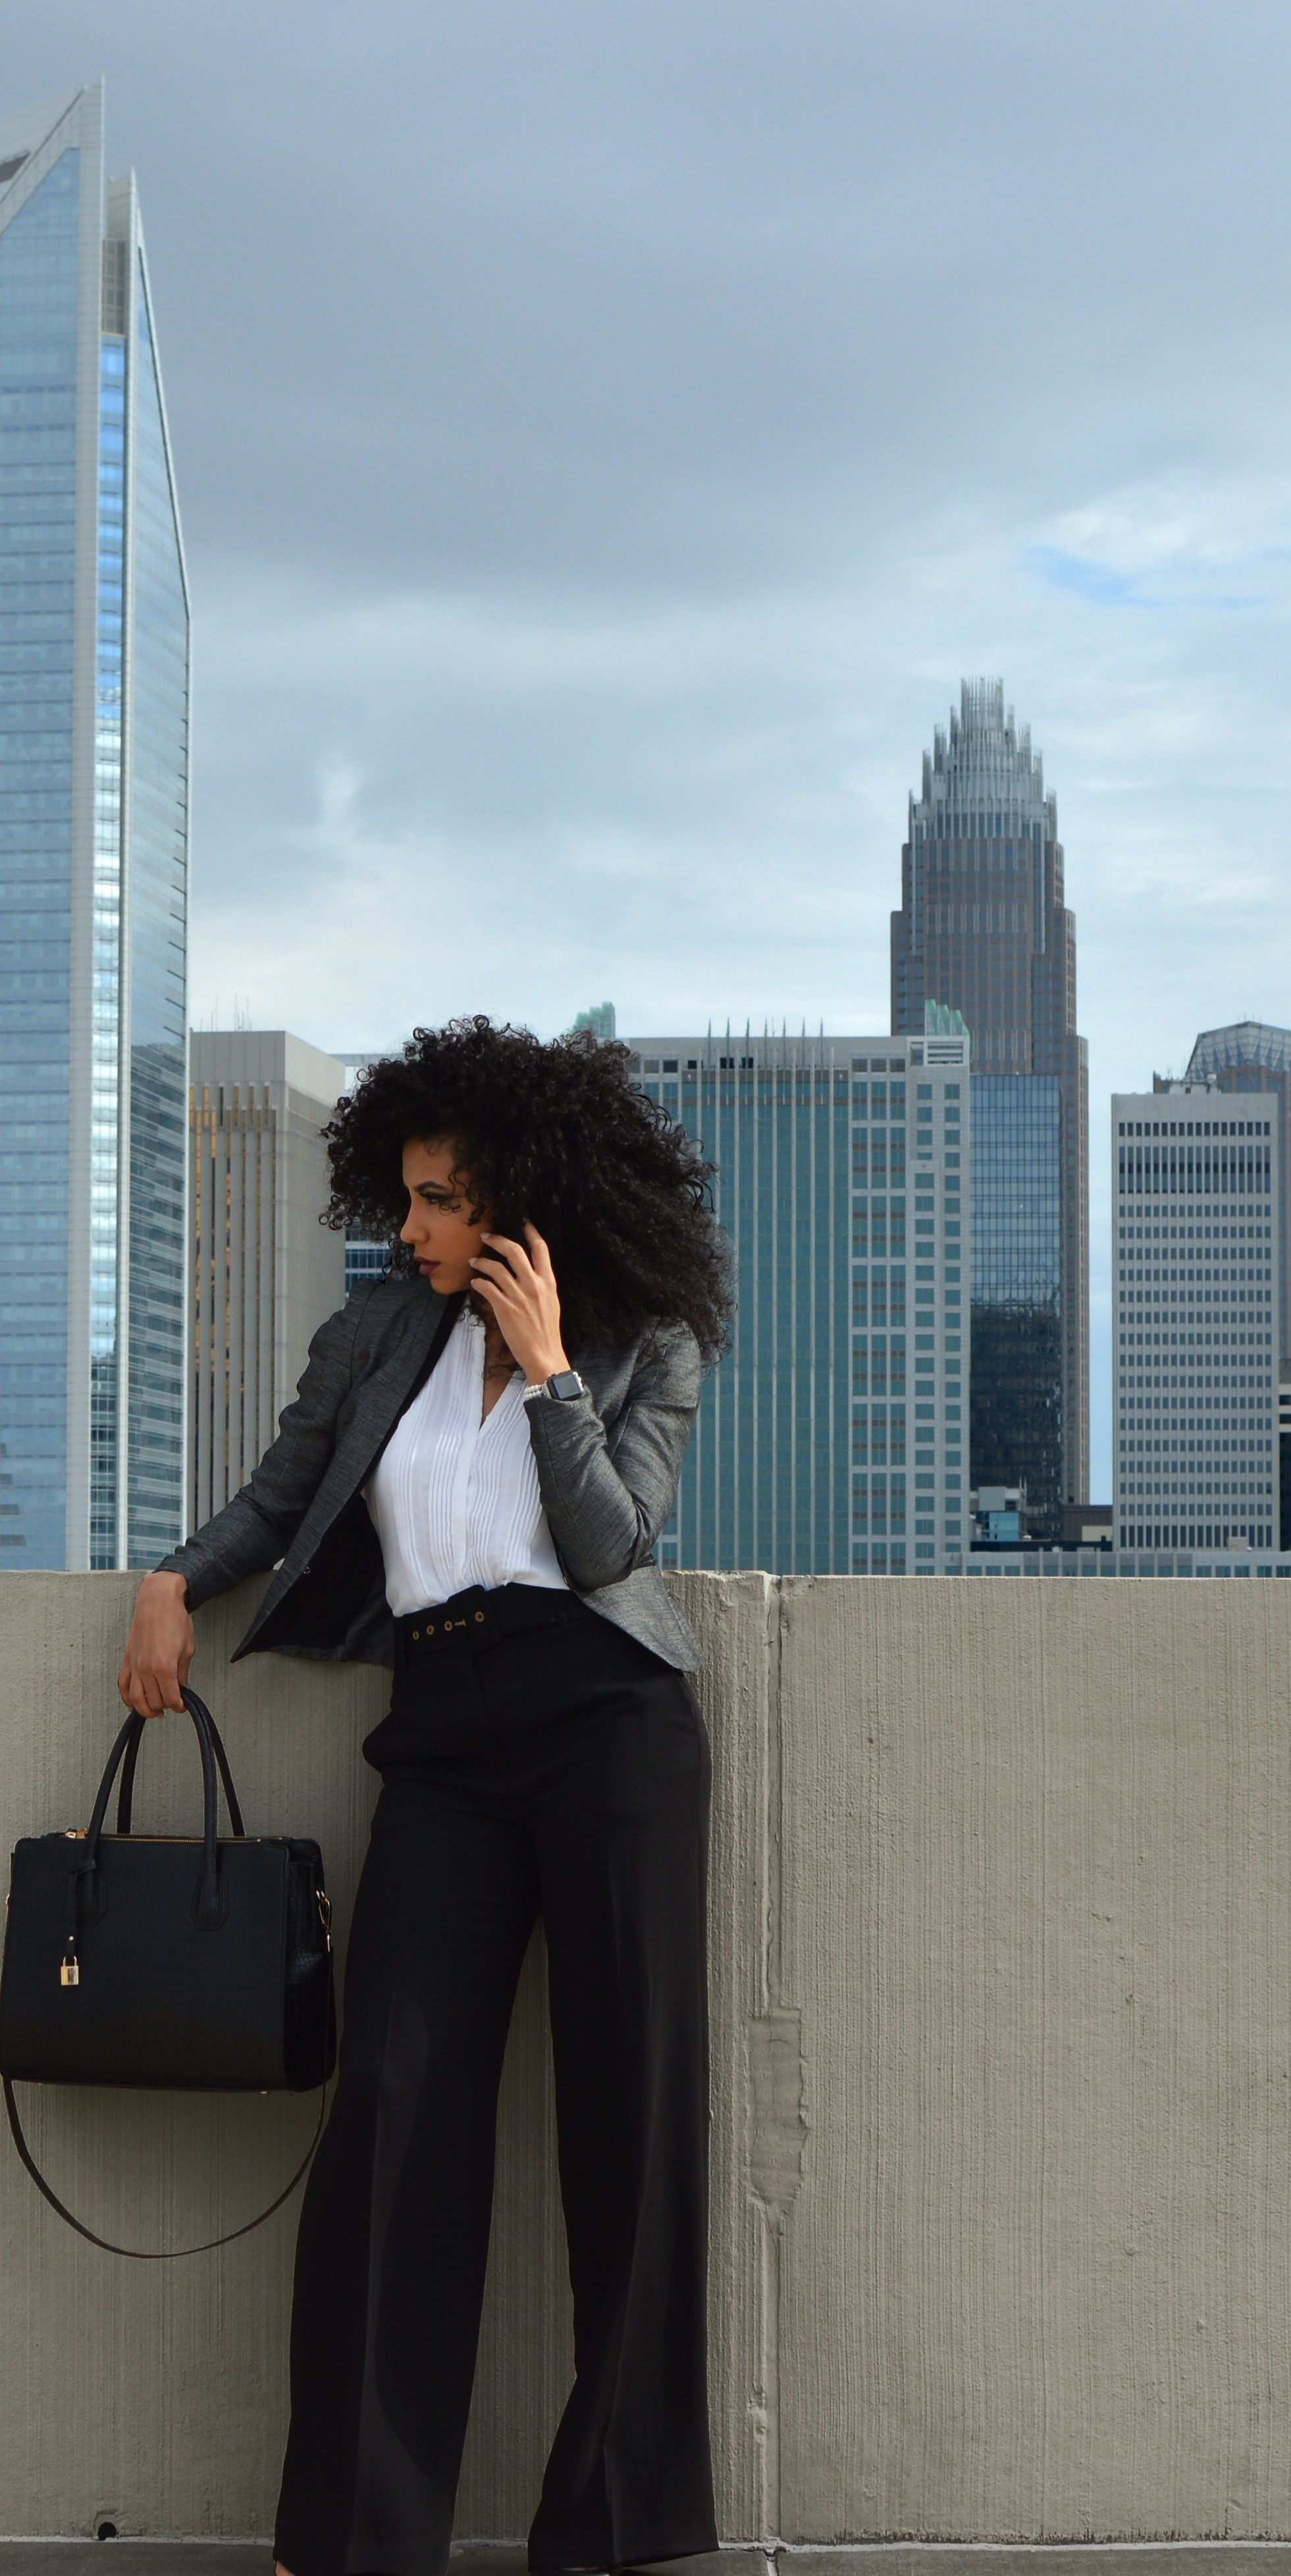 White Collar Glam Charlotte Nc Attorney Outfit Black Attorney Mixed Girl Professional Clothes Work Outfit Professional Outfits Attorney Outfit Fashion